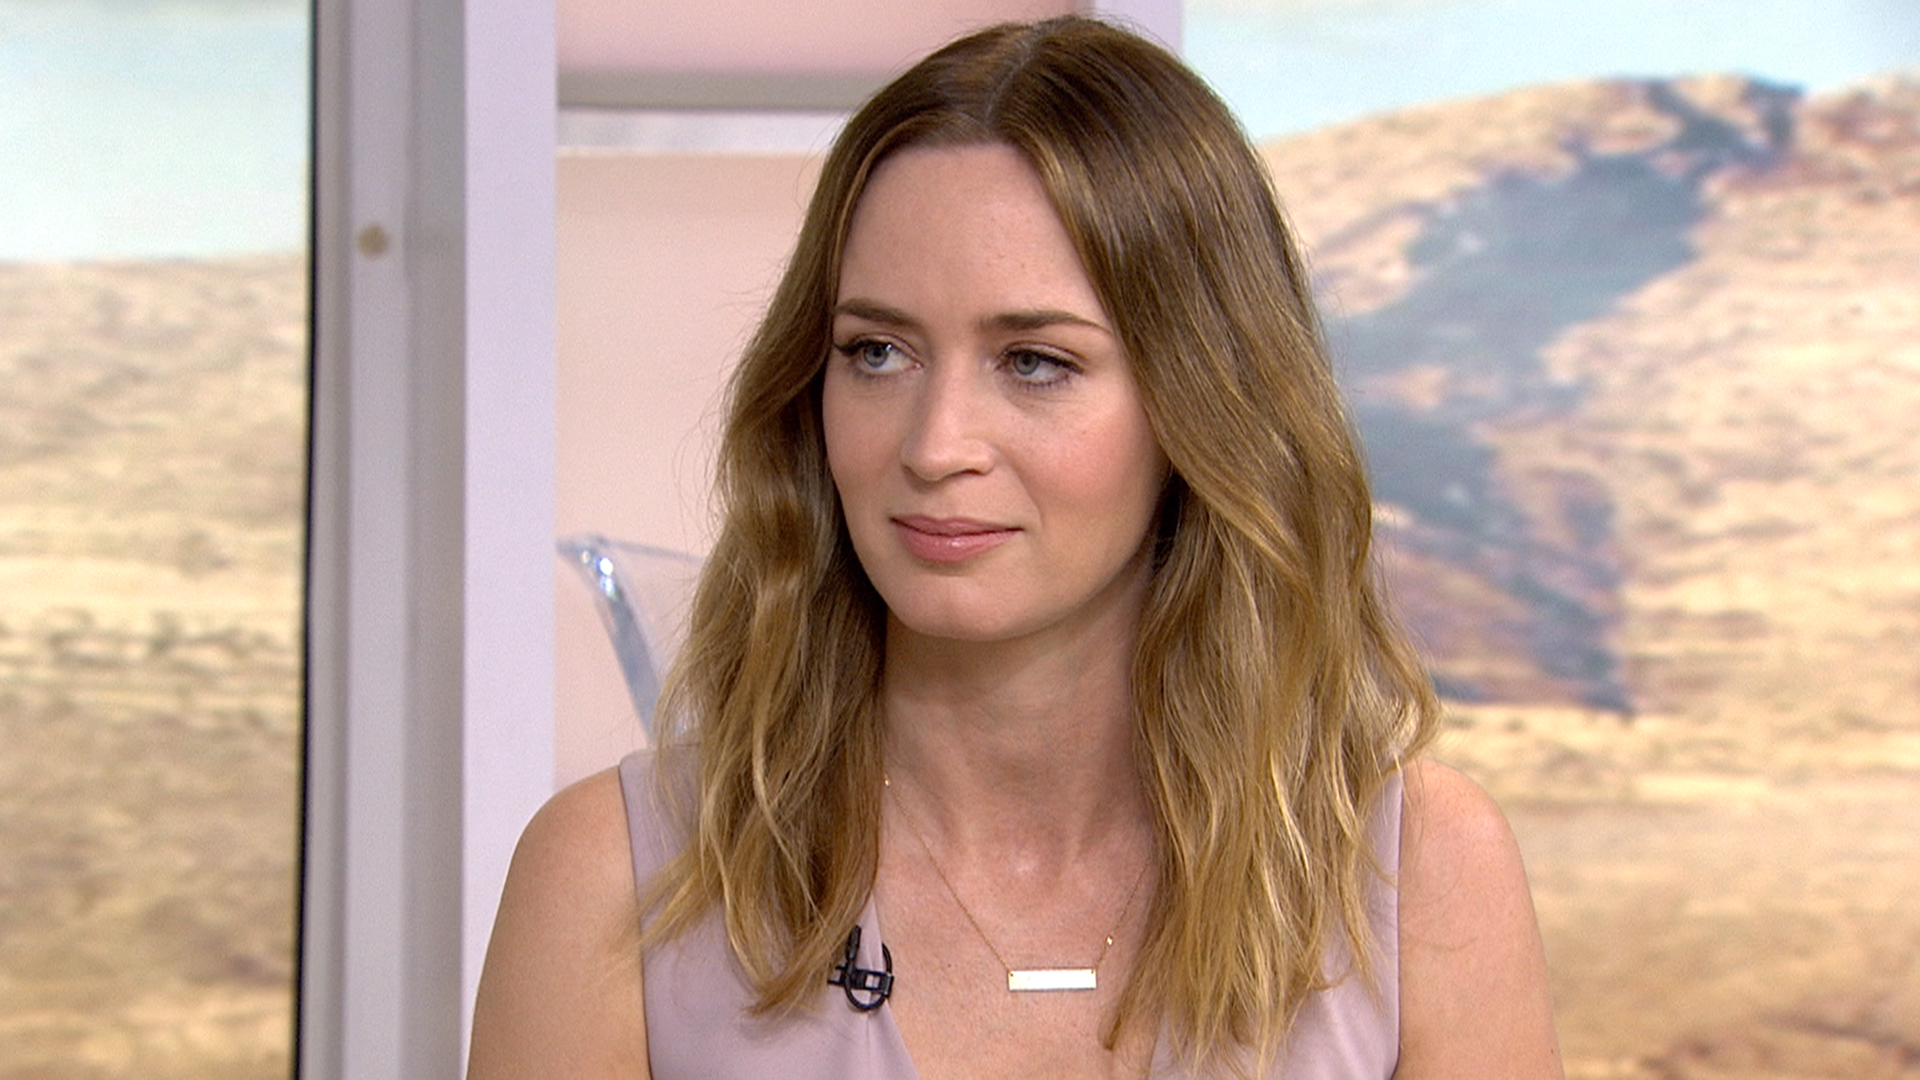 Emily Blunt gets serious about political citizenship joke ... кристина риччи